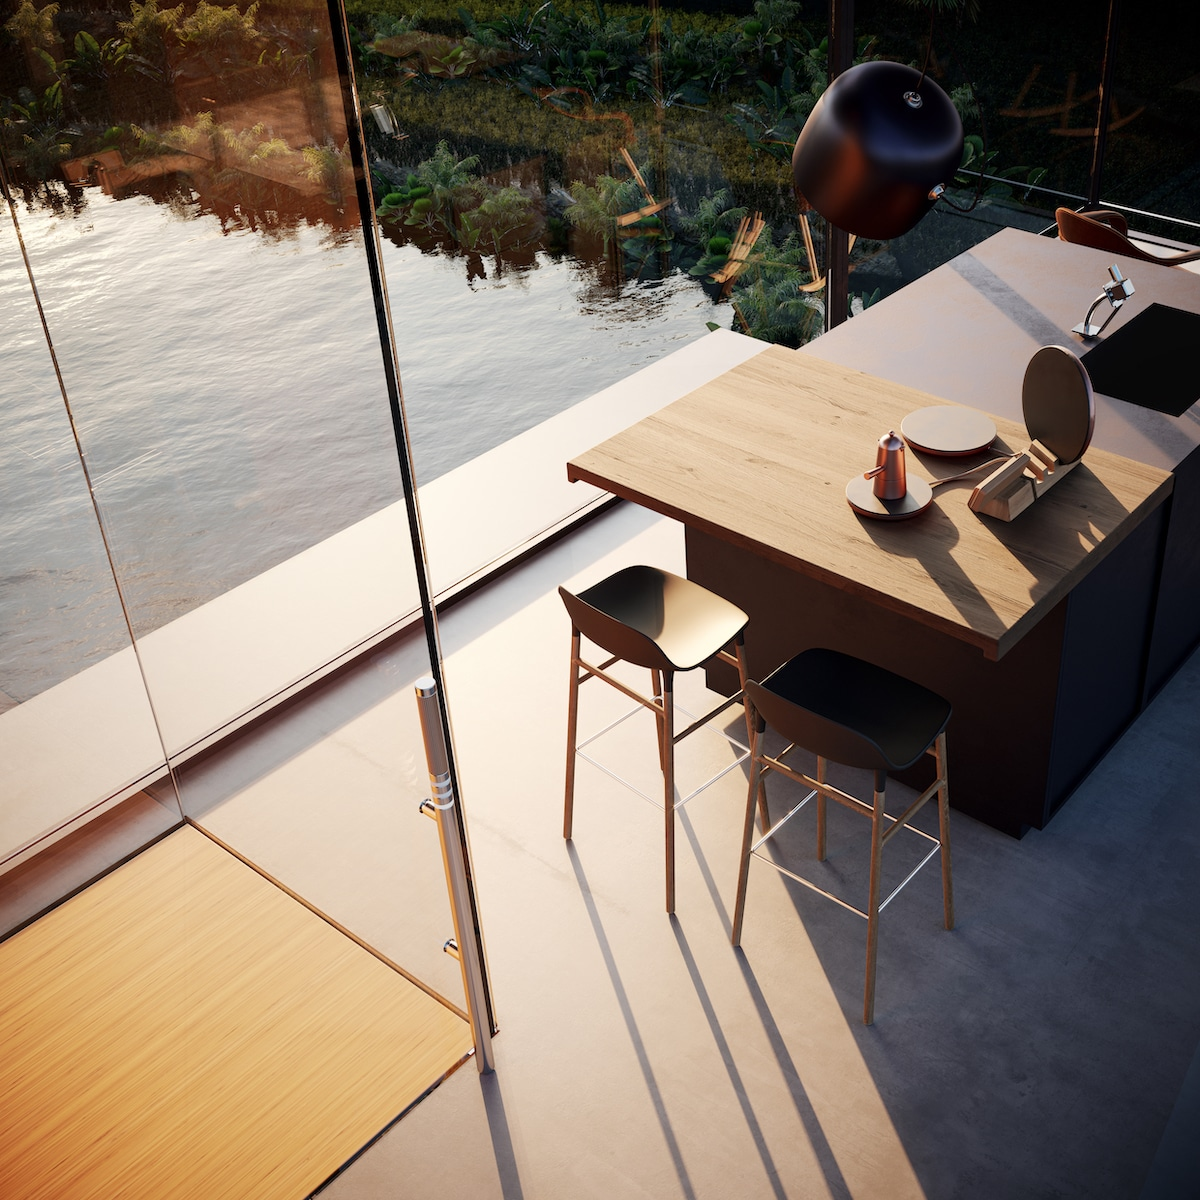 Interior View of Adriano Design's House on the Rice Paddy